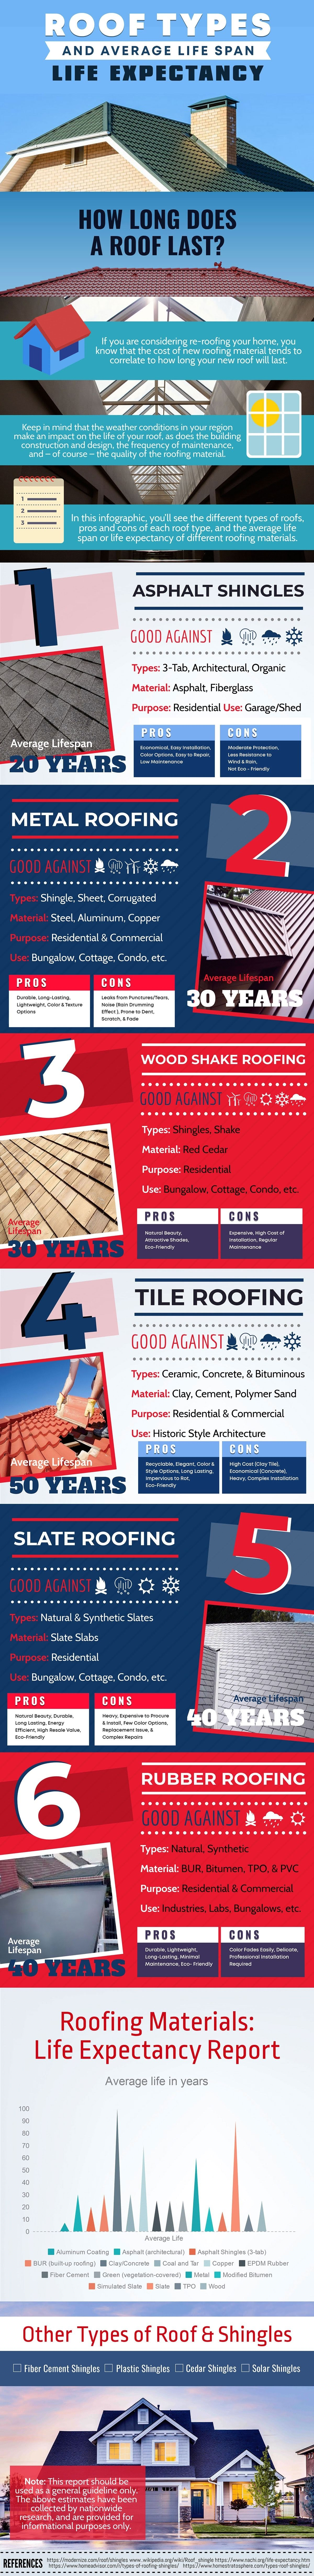 ROOF TYPES & AVERAGE LIFE SPAN #INFOGRAPHIC